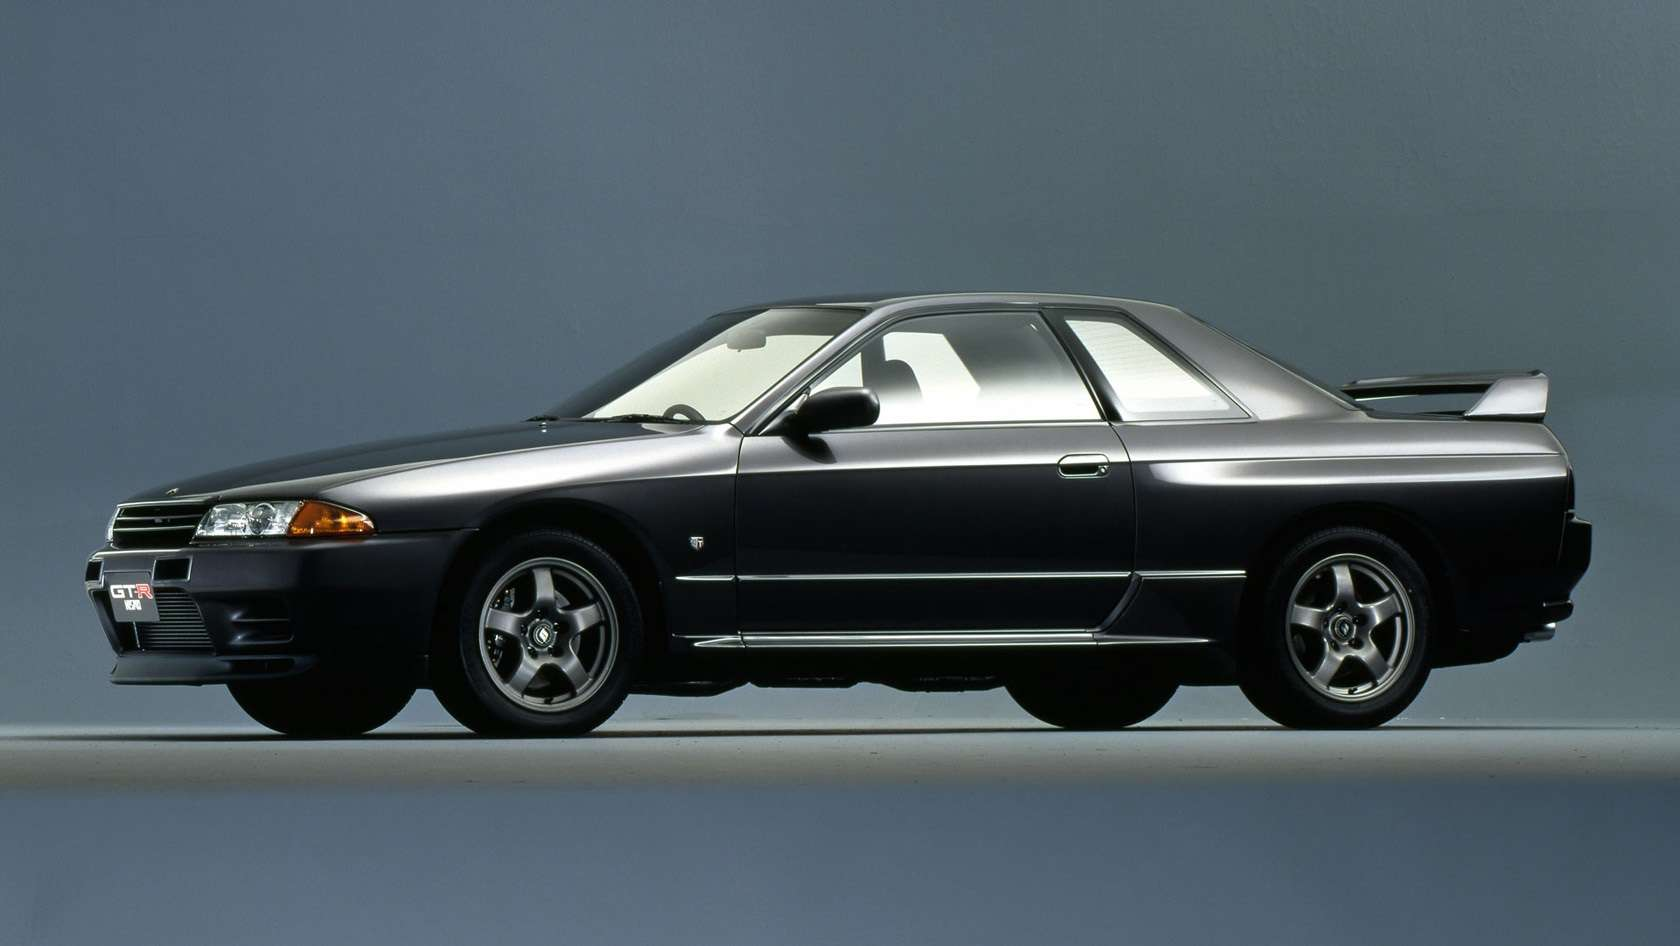 1993 Nissan Skyline R32 GTR coupe 2D wallpapers, specs and news ...